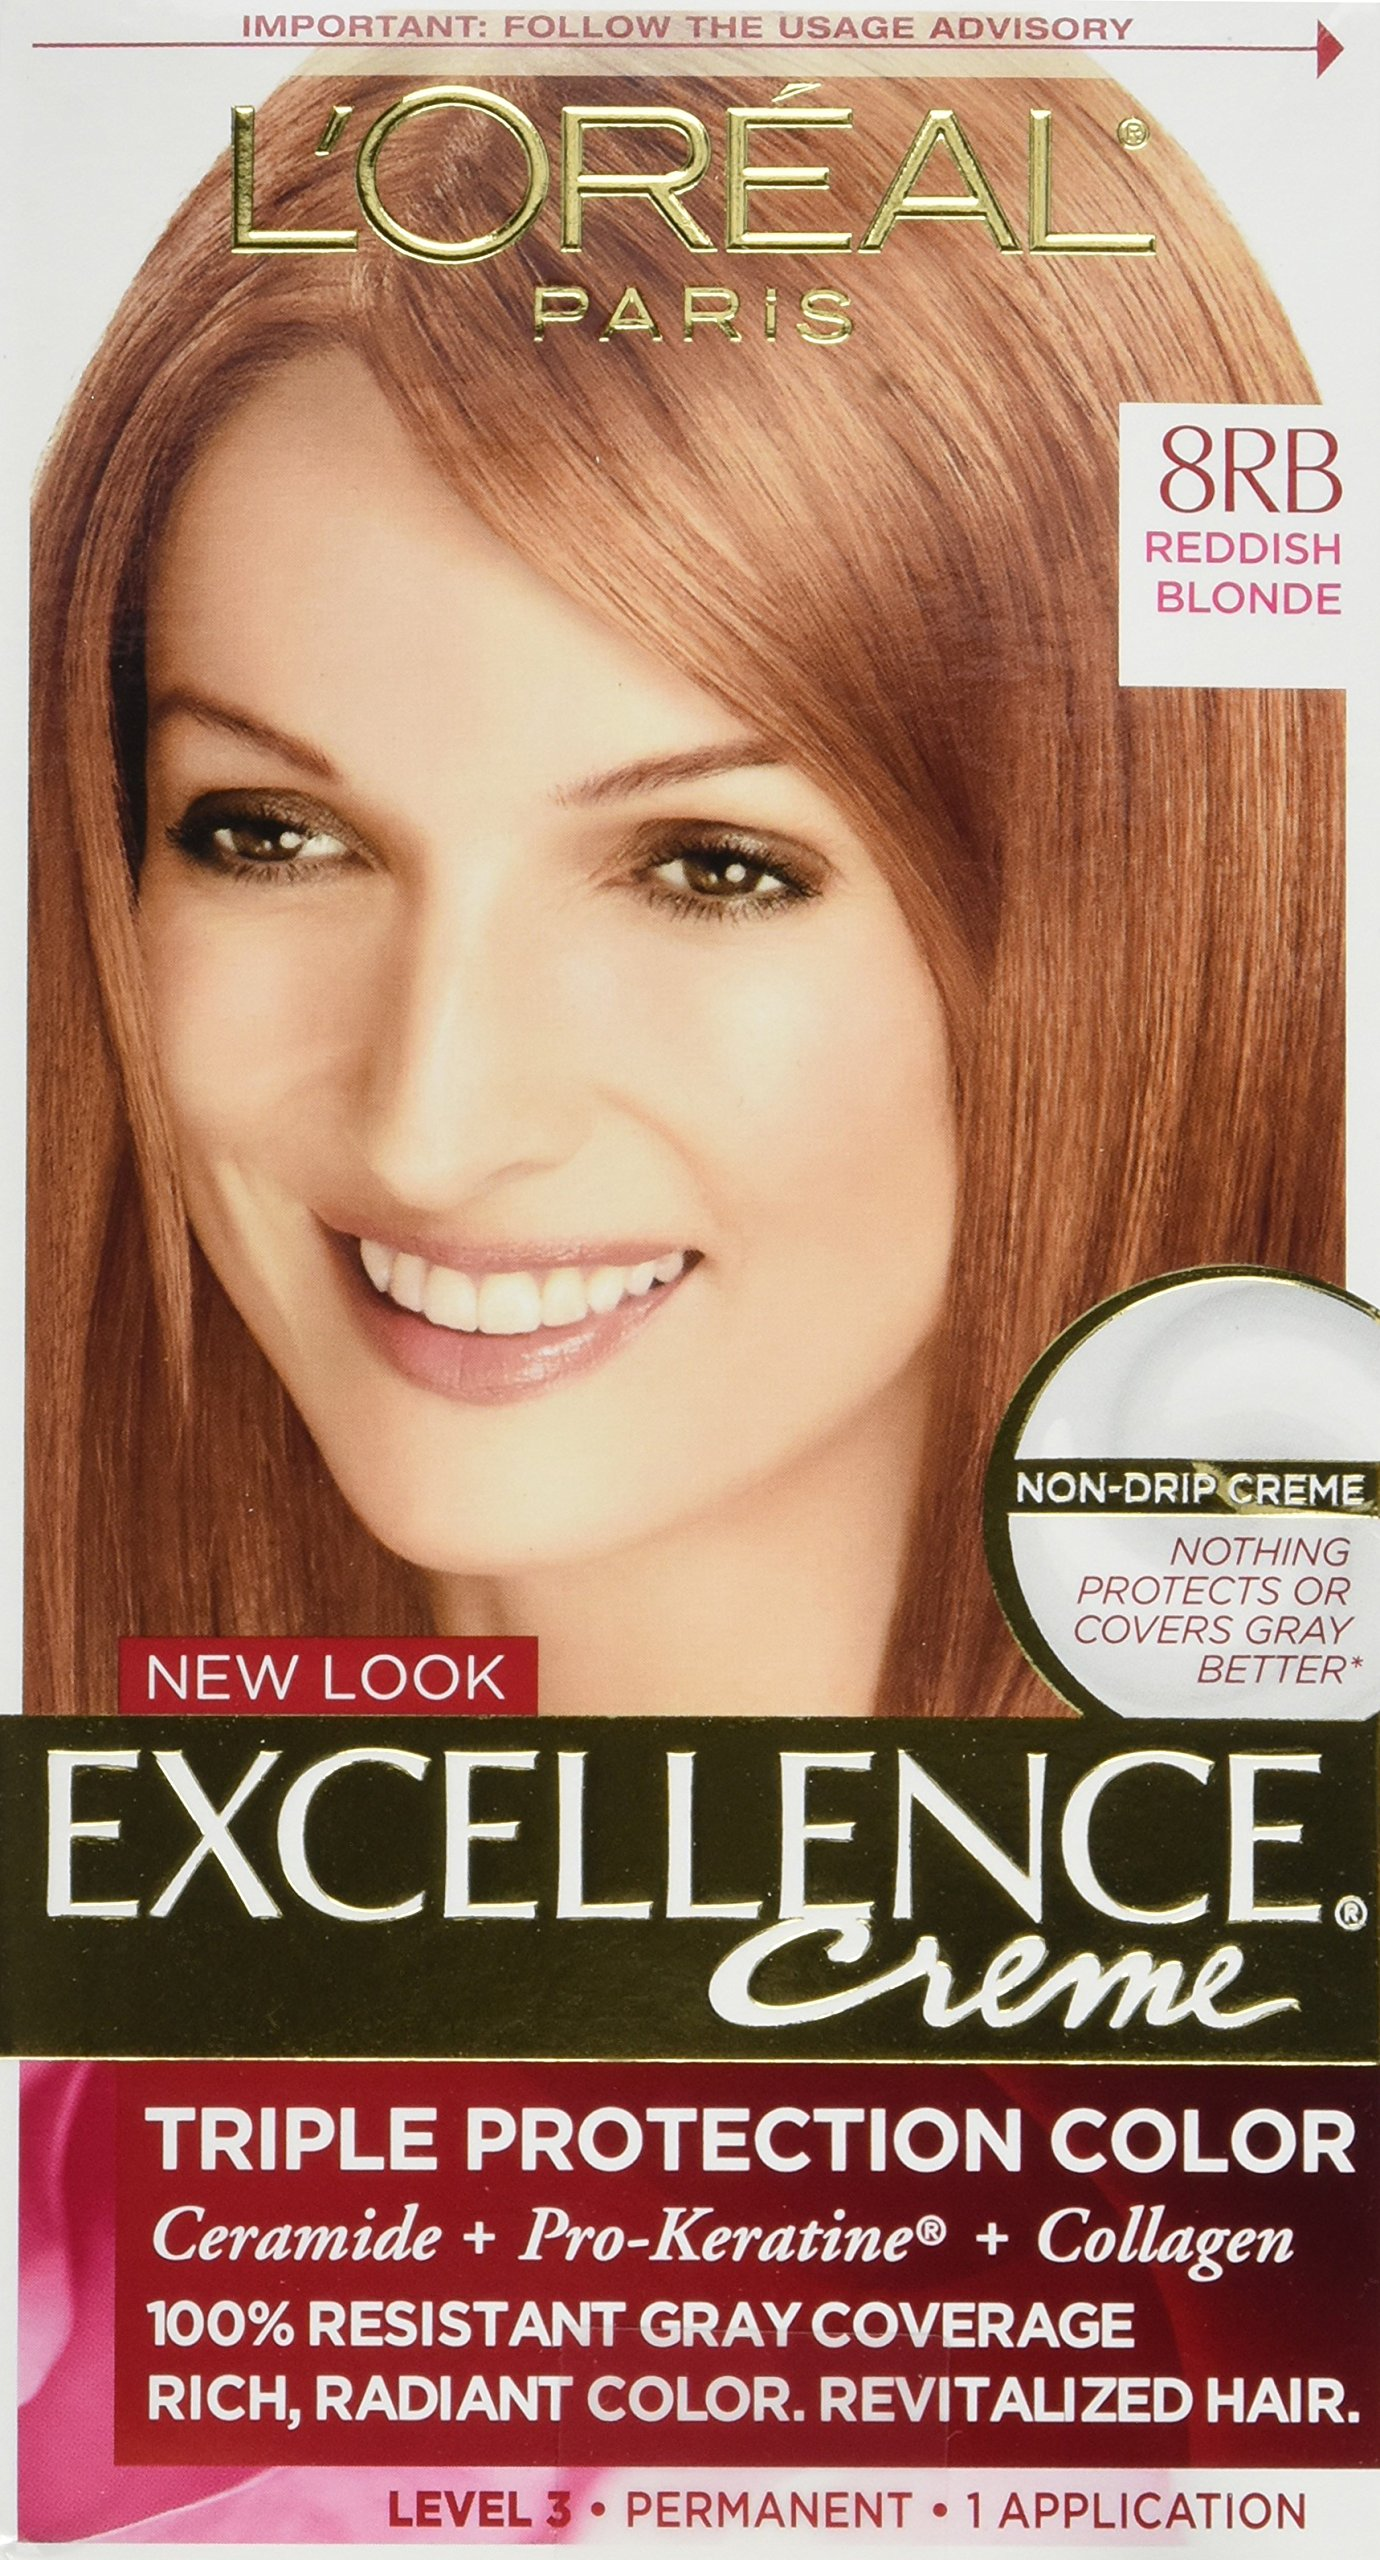 L'Oreal Excellence Creme 8RB Medium Reddish Blonde (Warmer) 1 Each (Pack of 4) by L'Oreal Paris